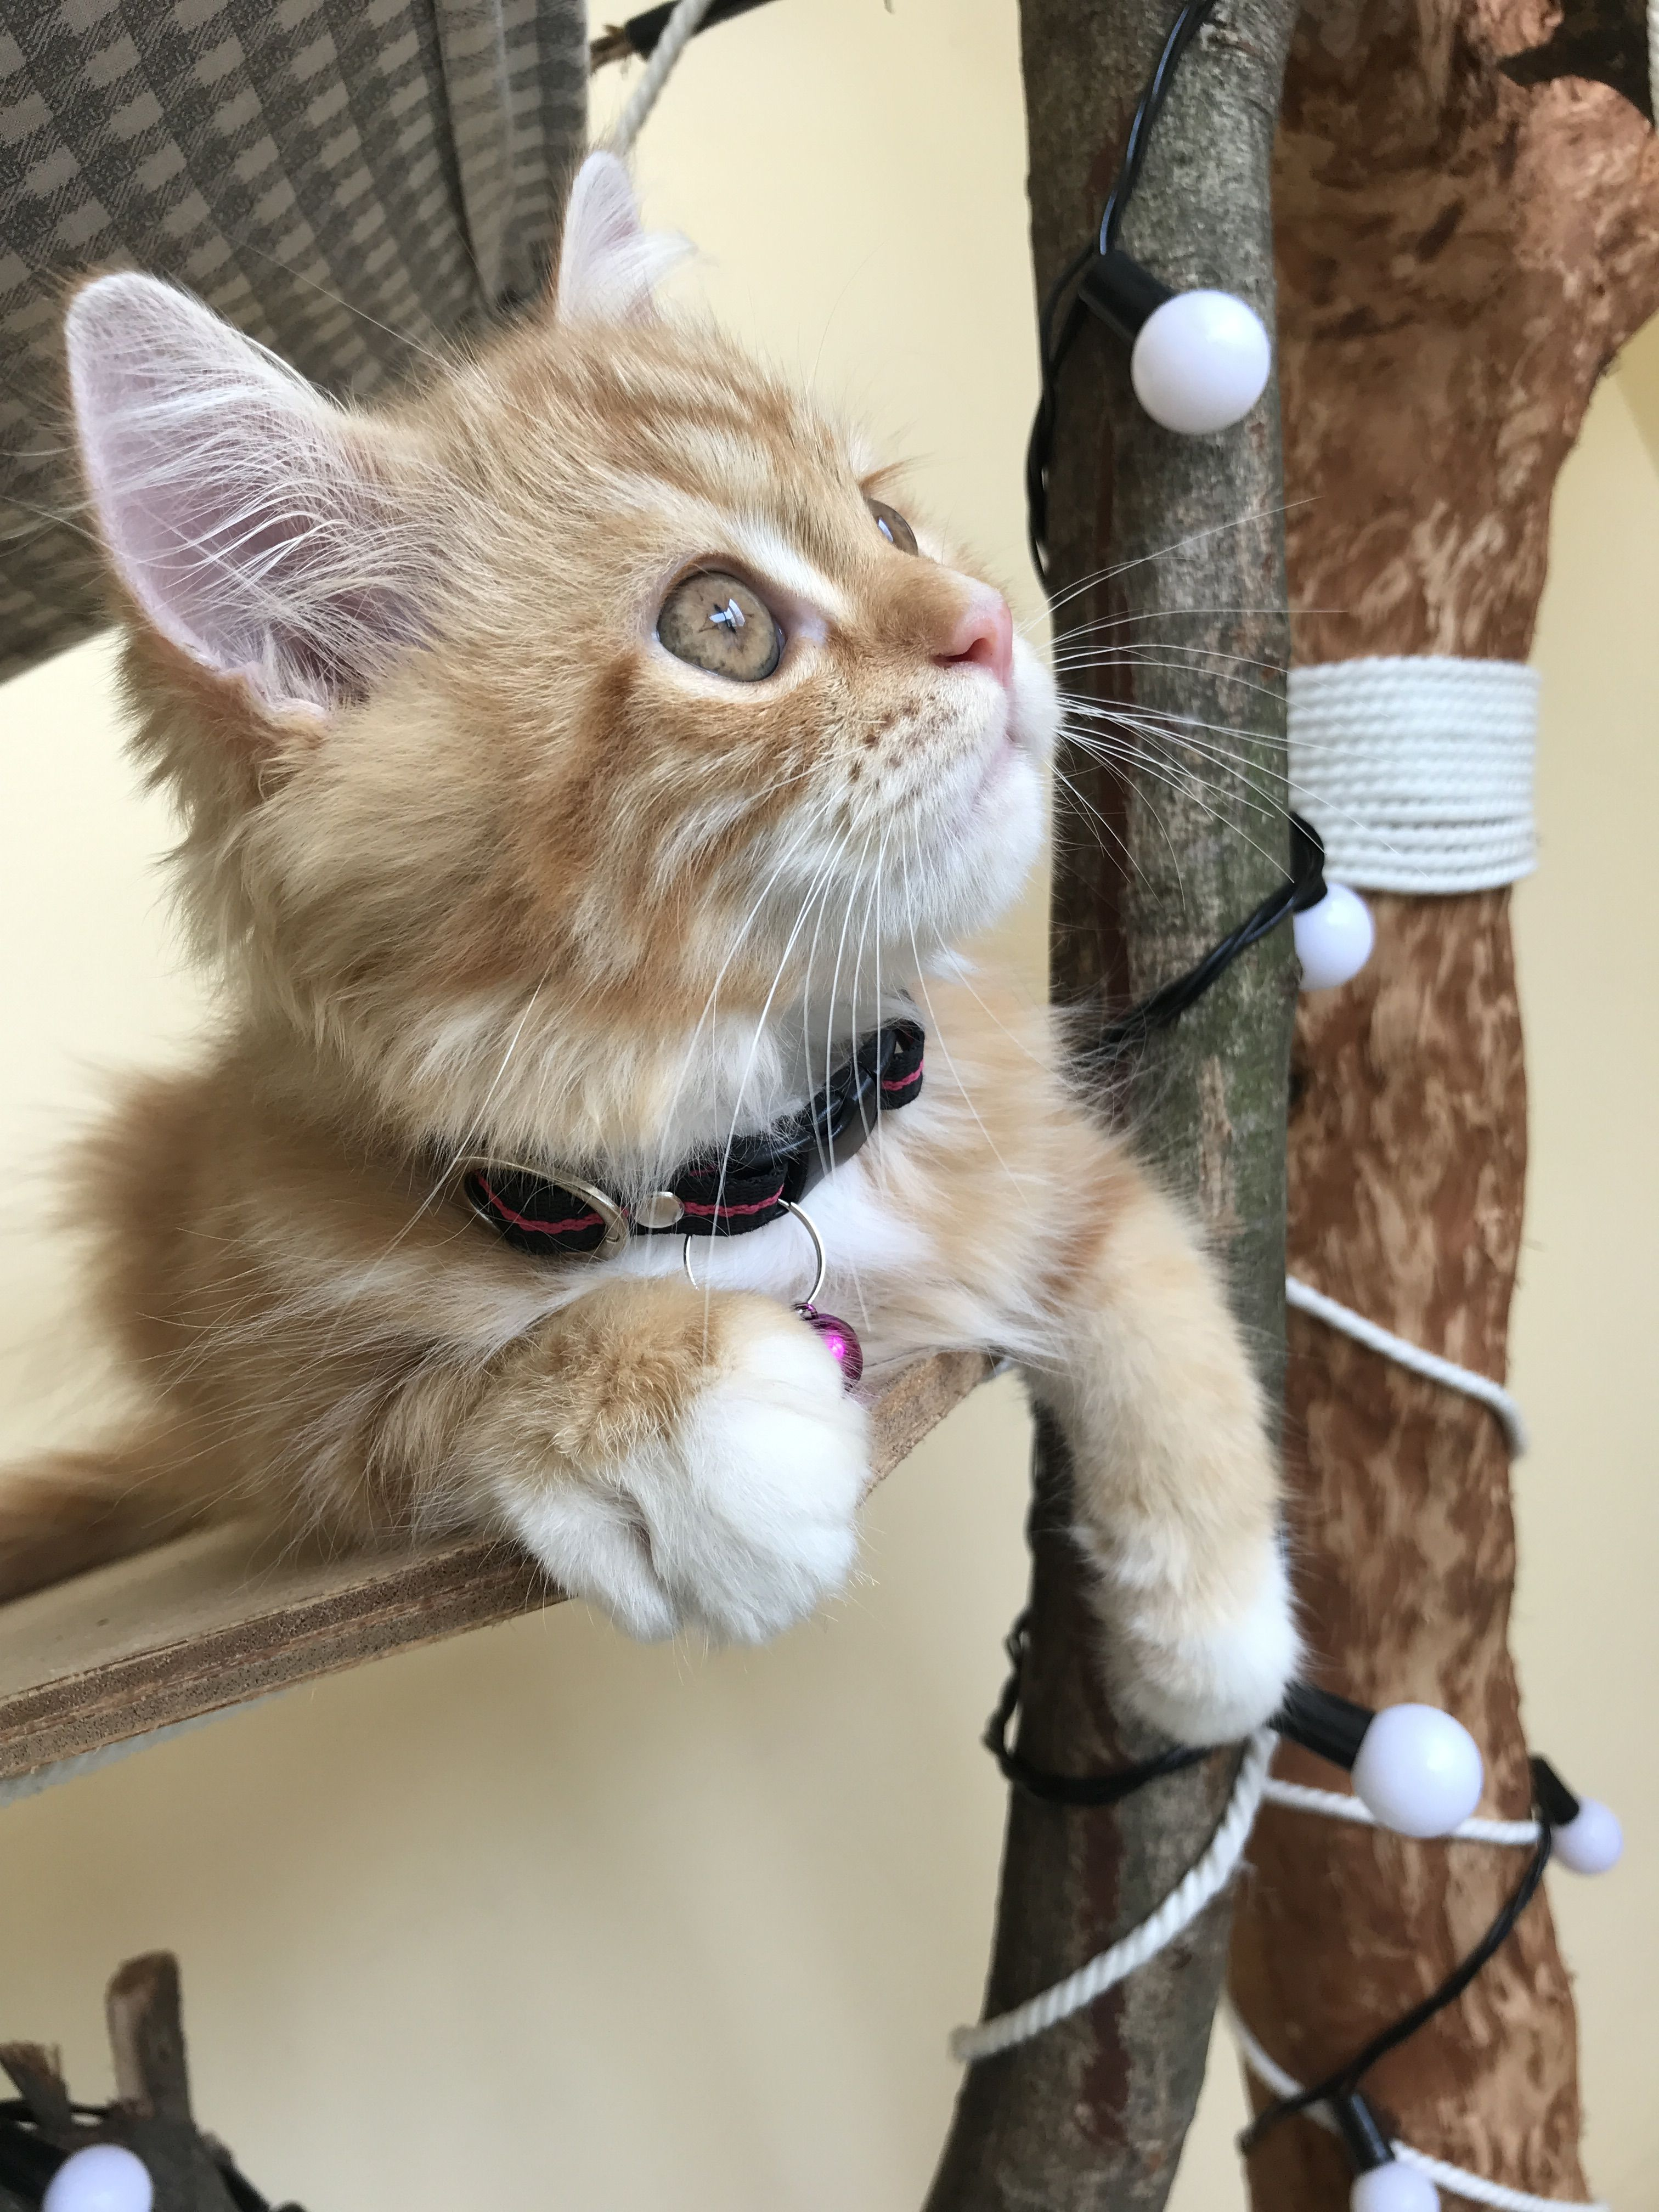 My Kitten Cute Cats And Dogs Cute Cats Kittens Cutest